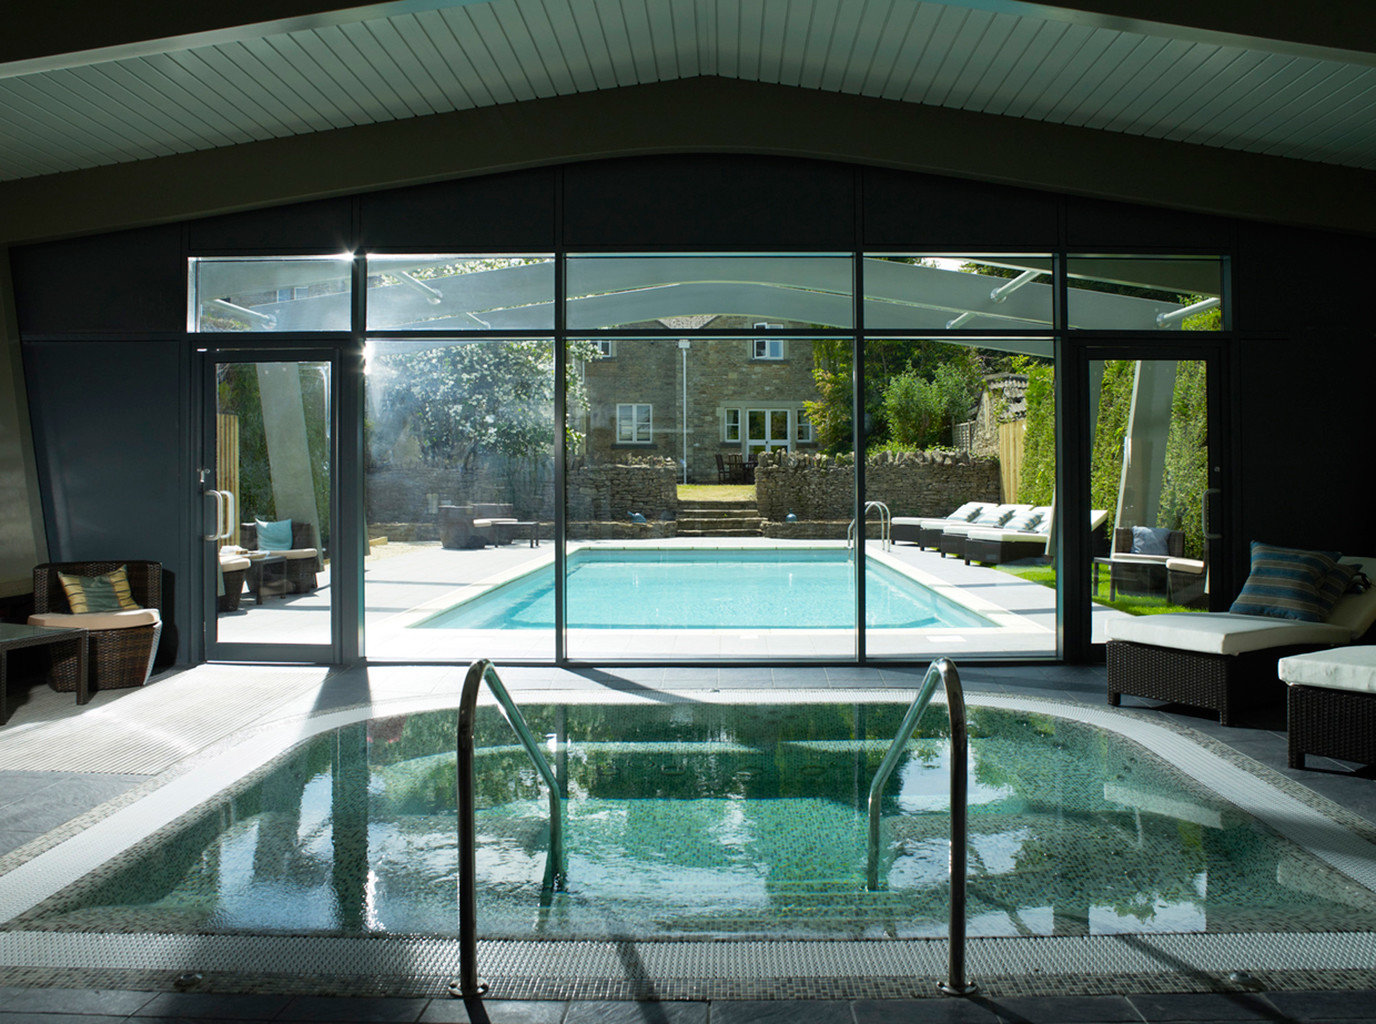 building swimming pool leisure centre daylighting overlooking